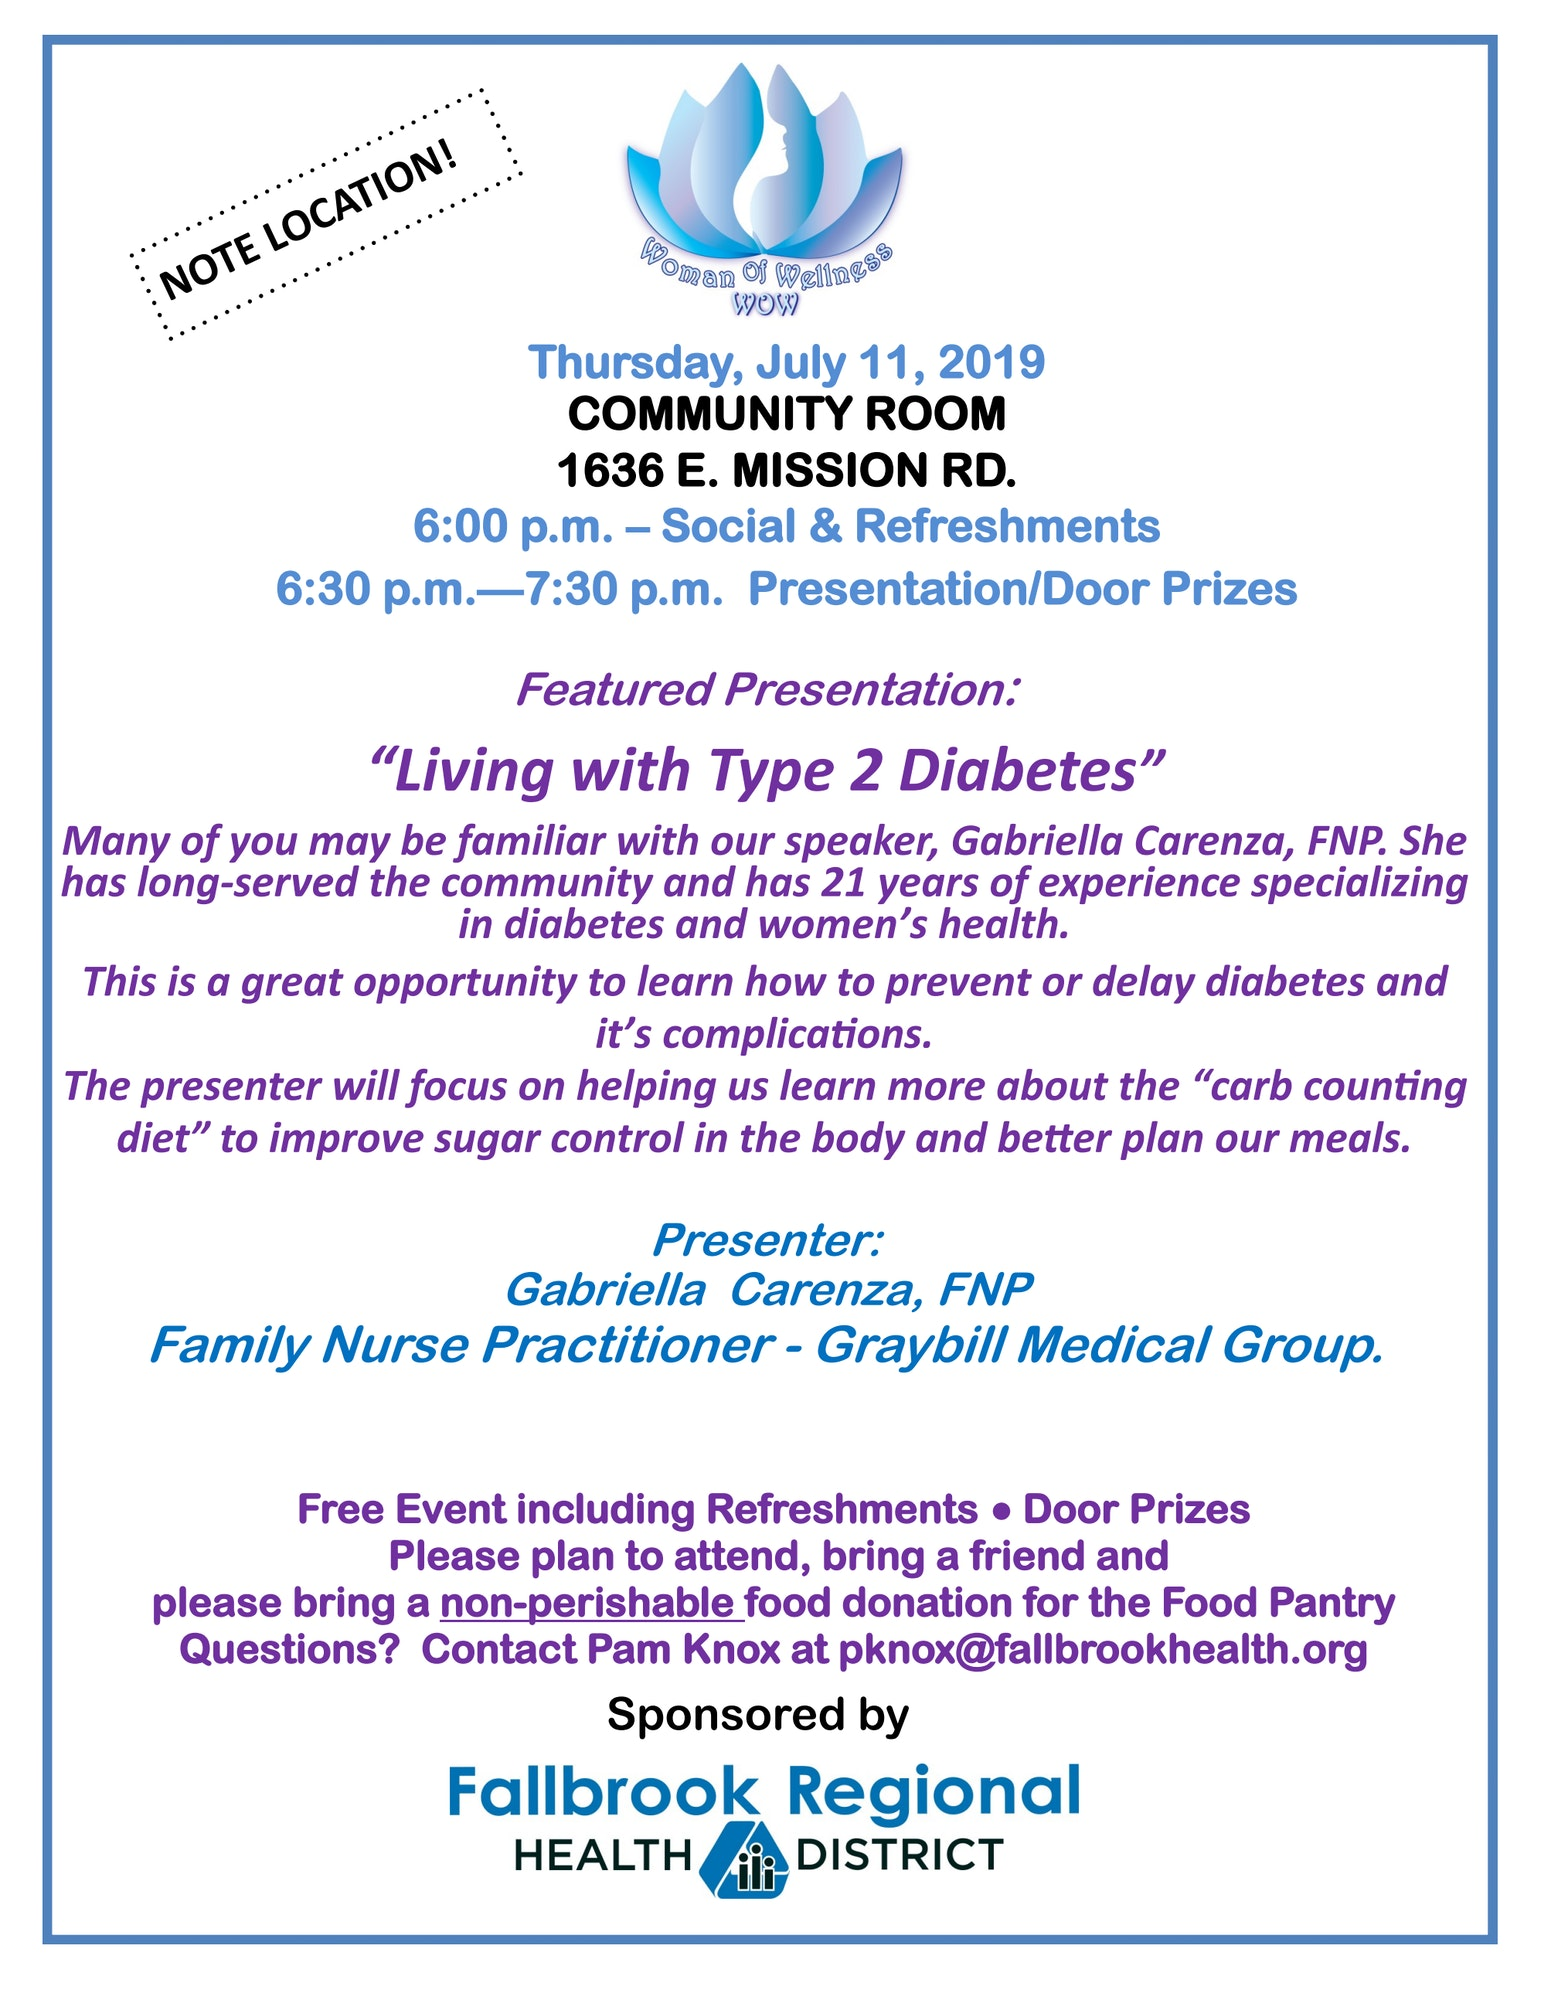 "Presented by: Gabriella Carenza, Family Nurse Practitioner - Graybill Medical Group. Many of you may be familiar with our speaker, Gabriella Carenza, FNP. She has long-served the community and has 21 years of experience specializing in diabetes and women's health. This is a great opportunity to learn how to prevent or delay diabetes and it's complications. The presenter will focus on helping us learn more about the ""carb counting diet"" to improve sugar control in the body and better plan our meals."